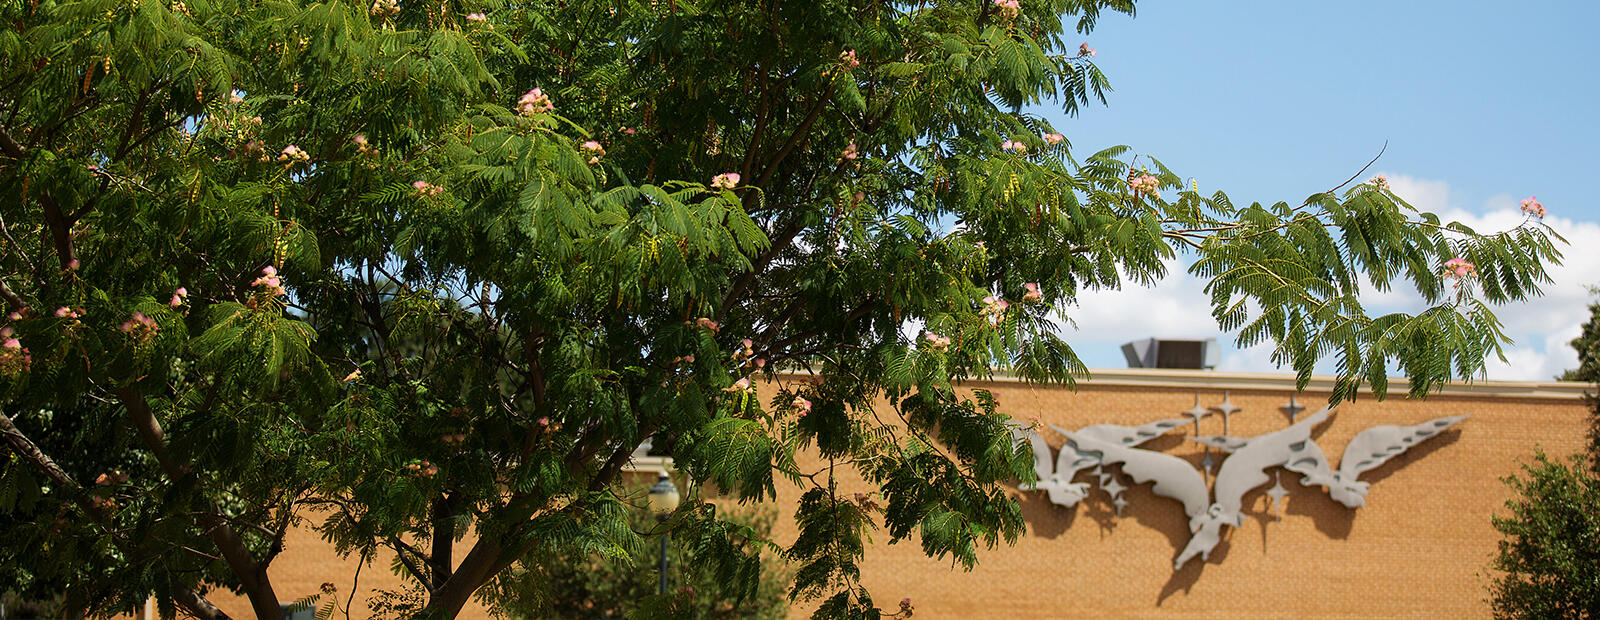 A photo of a tree with green leaves and pink flowers in front of a light tan, bricked building with three silver angels on it.